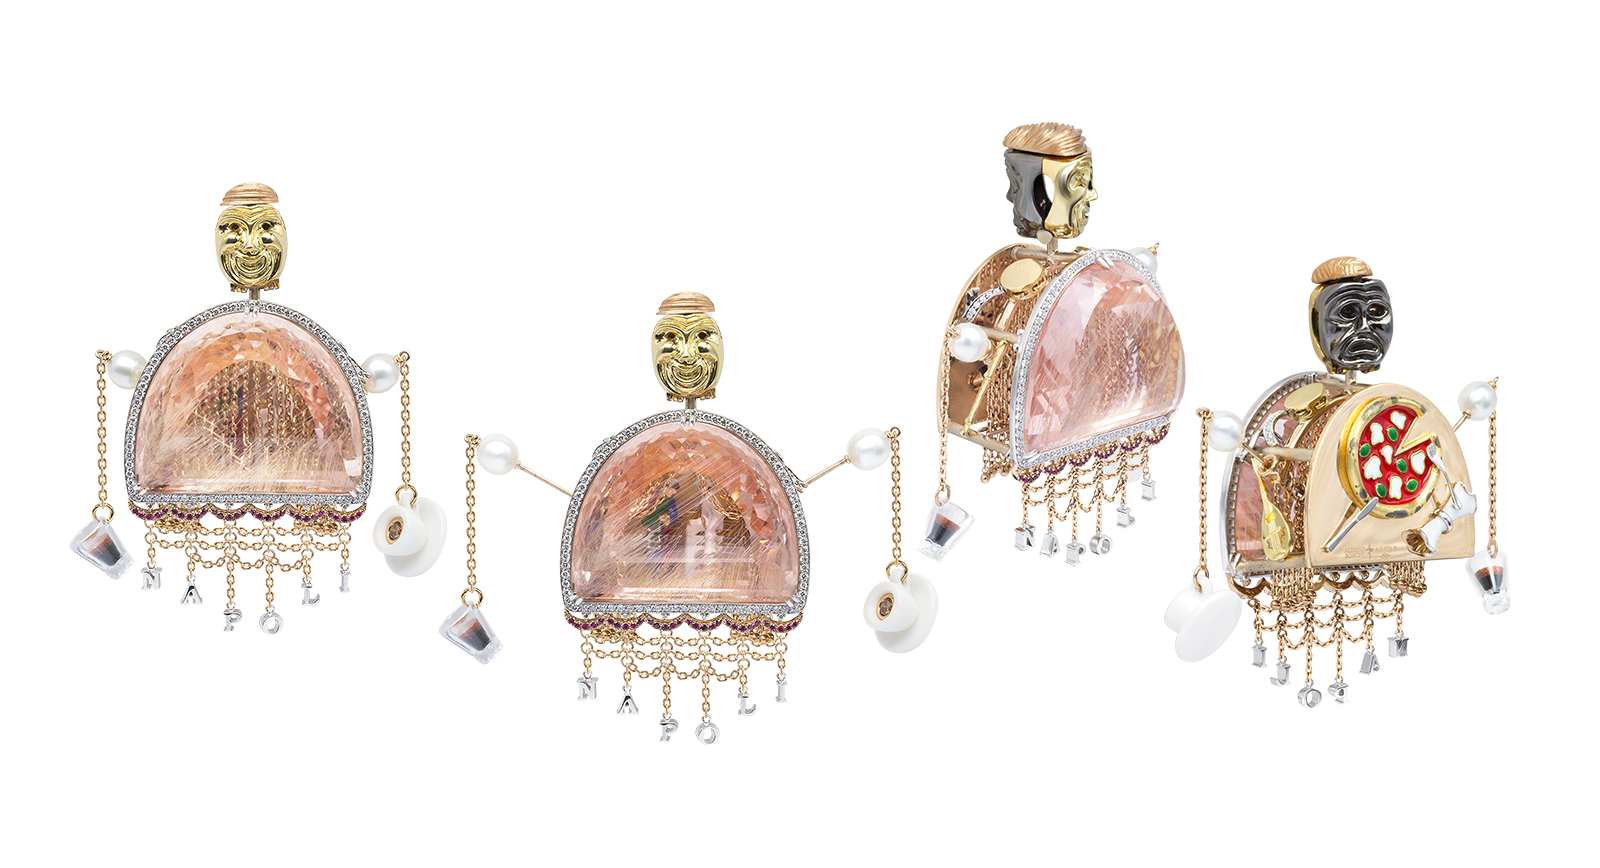 Alessio Boschi's 'Bella Napoli' pendant, with fancy cut morganite, diamonds, keshi pearls, rubies and enamel details